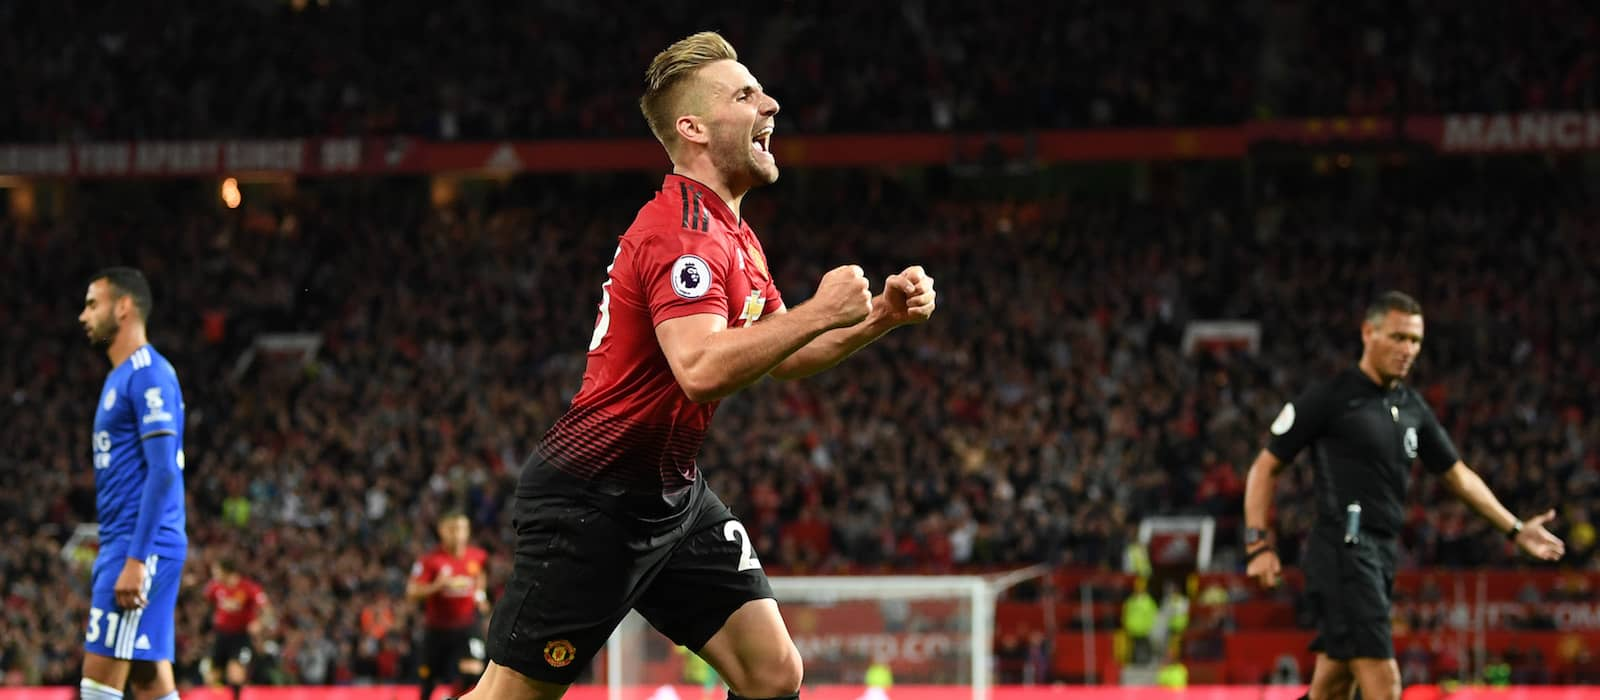 Luke Shaw explains how 'crazy' half-time team talk helped Manchester United improve vs Liverpool